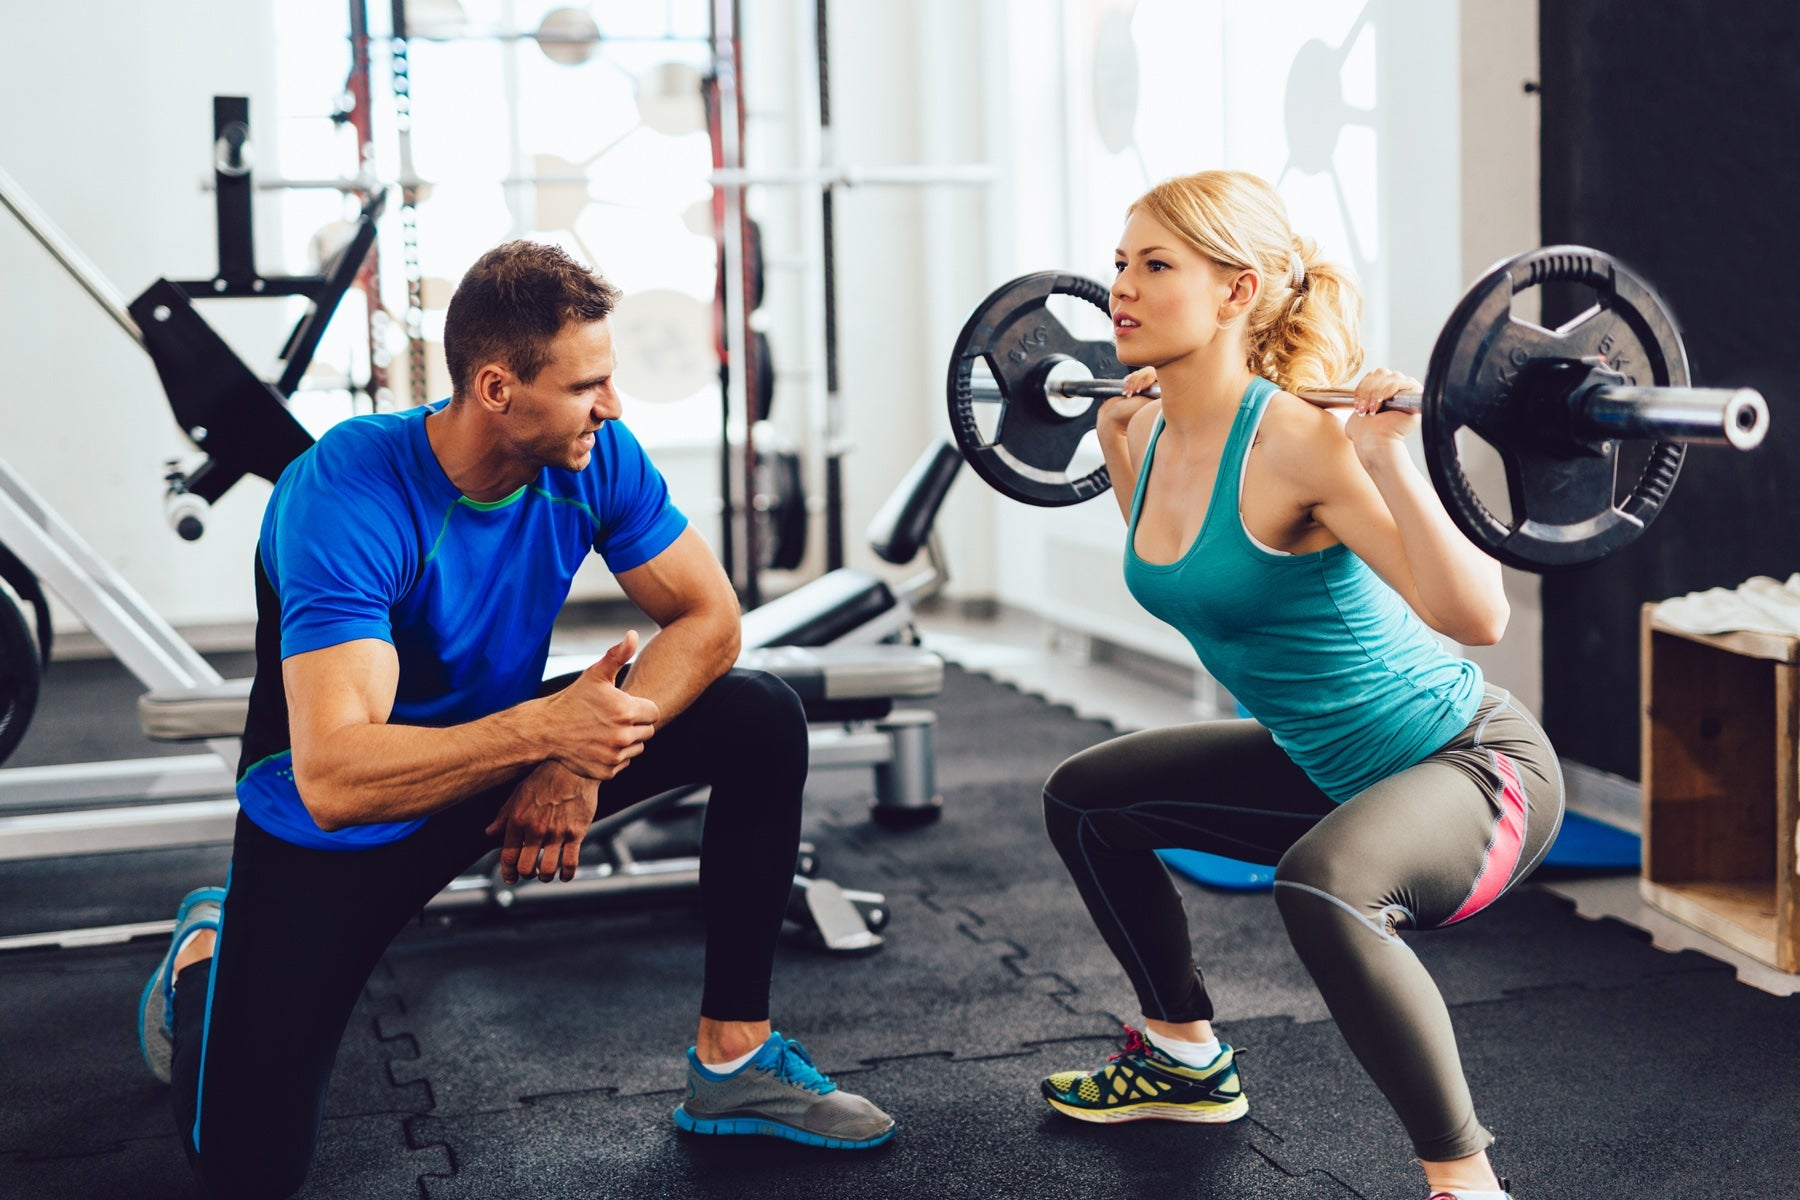 Personal Trainer Certification Online